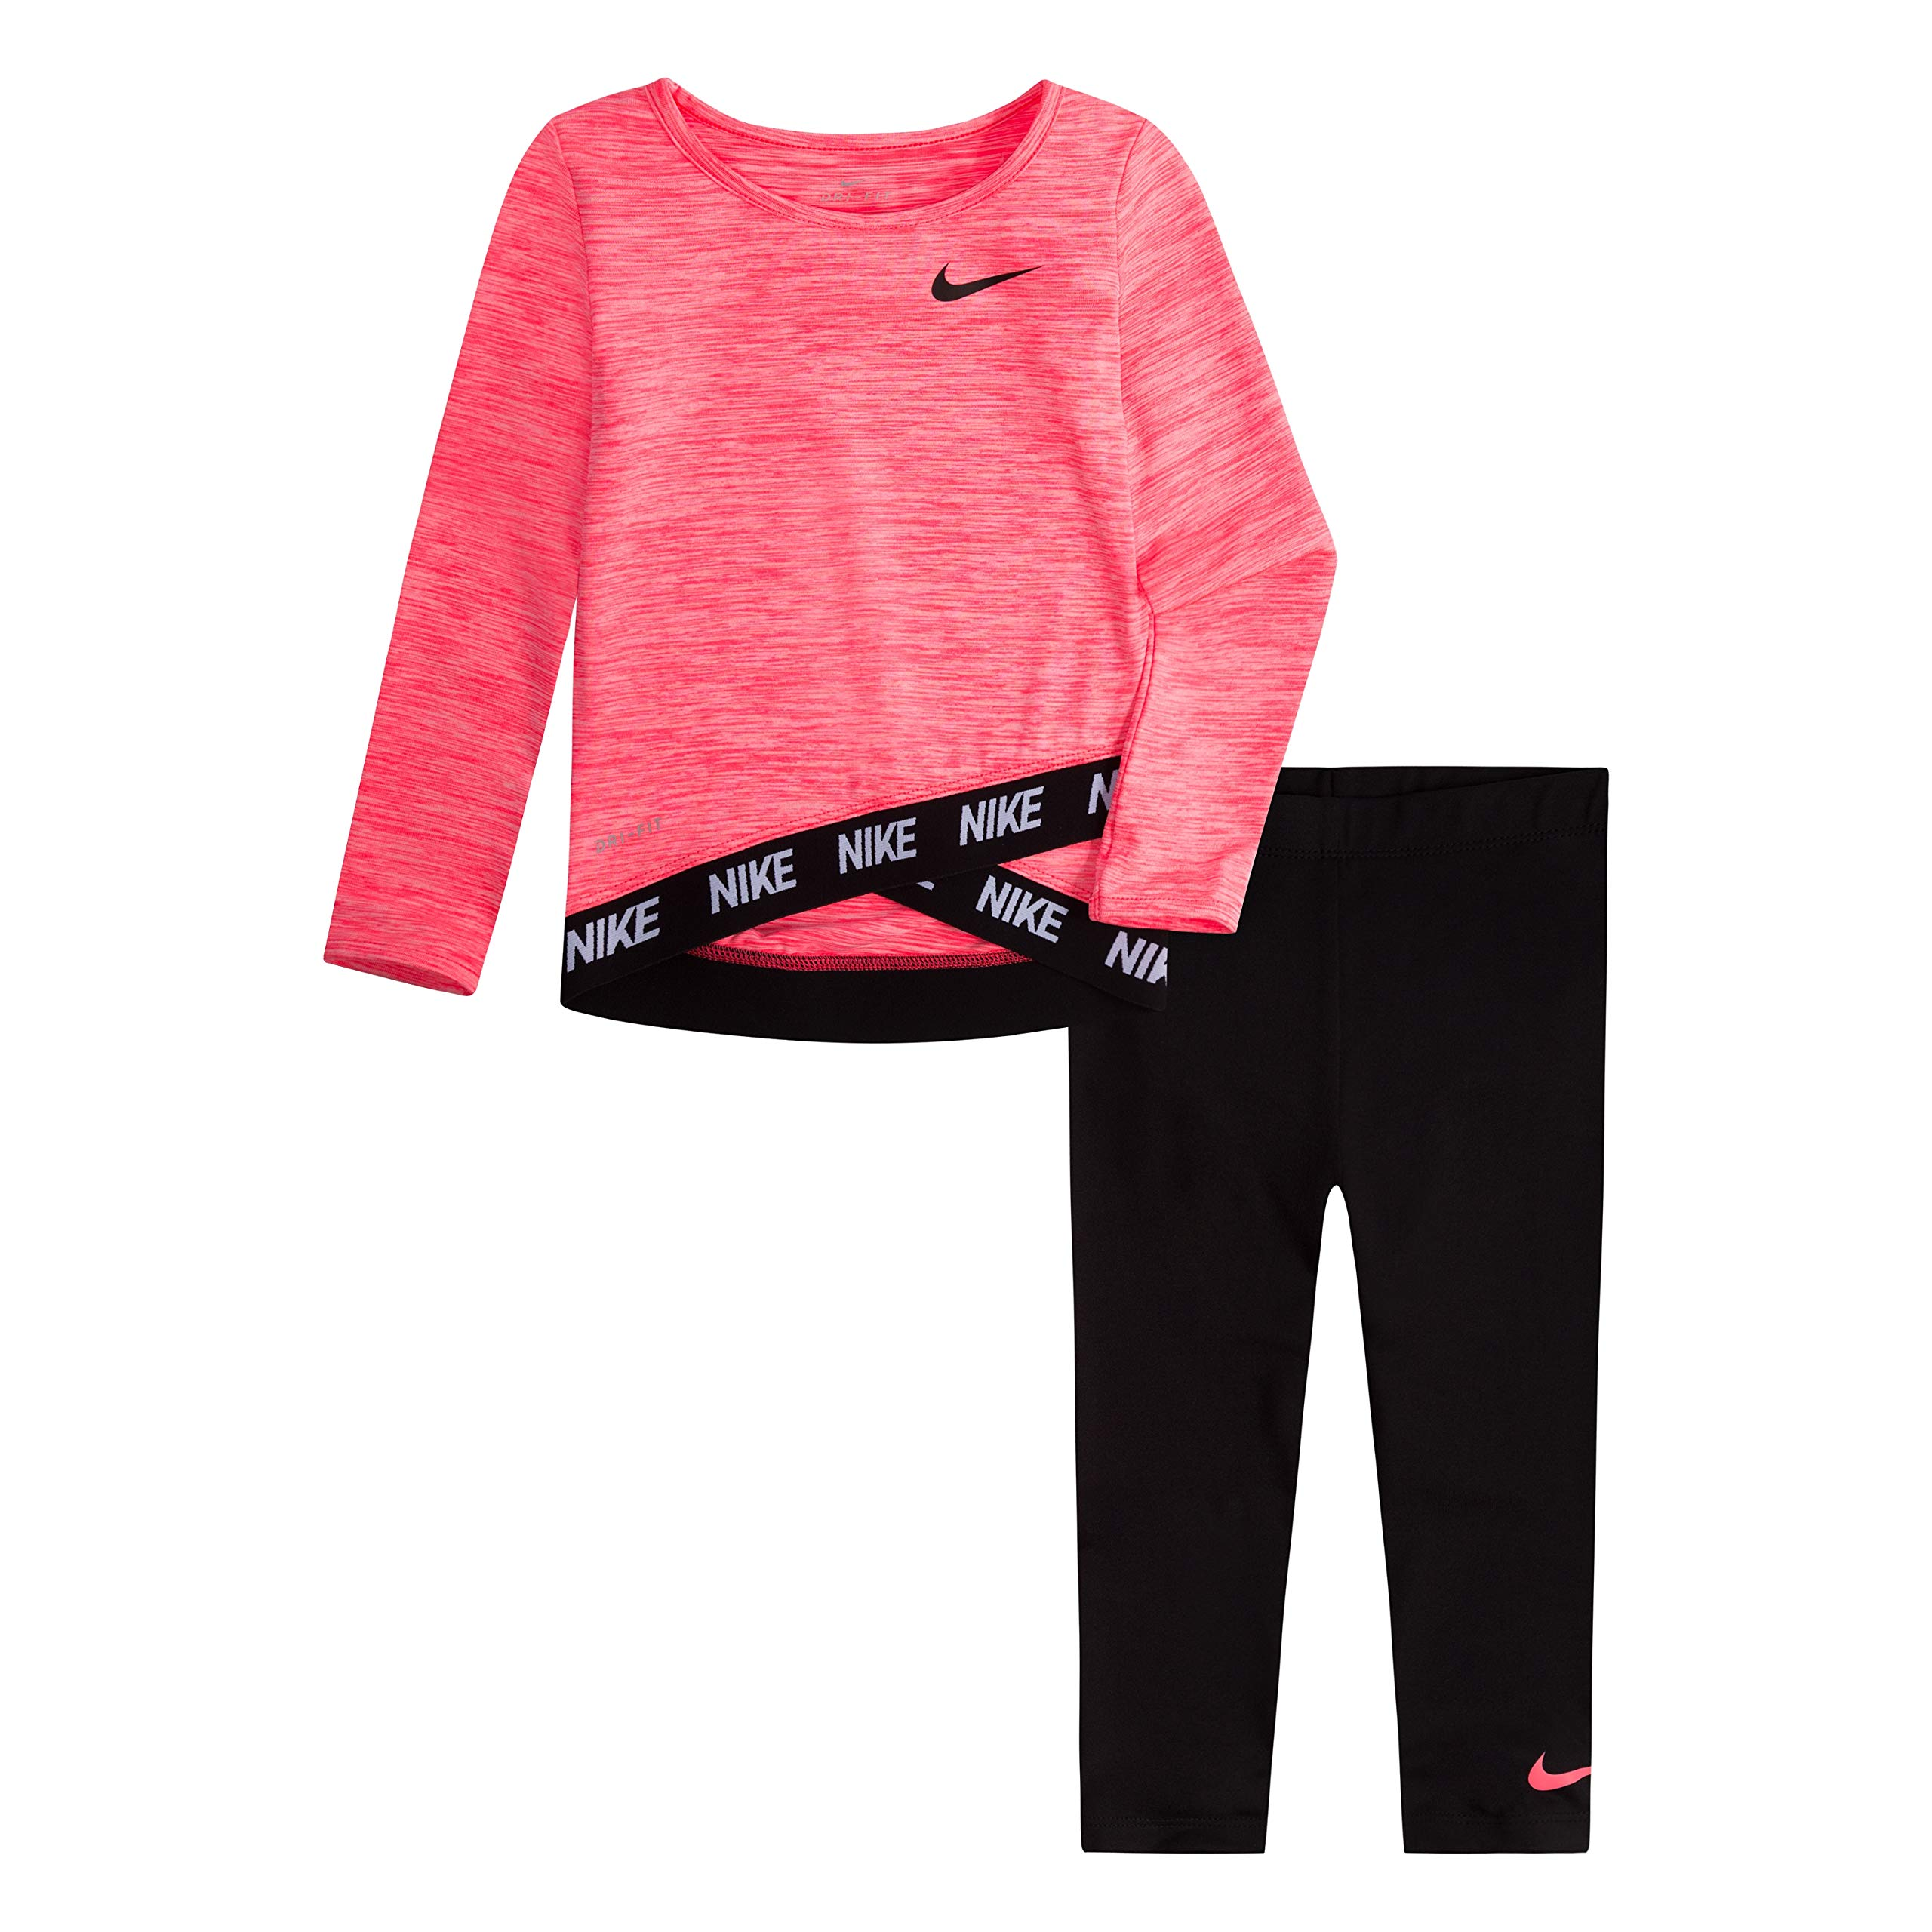 NIKE Children's Apparel Girls' Toddler Long Sleeve Top and Leggings 2-Piece Set, Black/Racer Pink, 3T